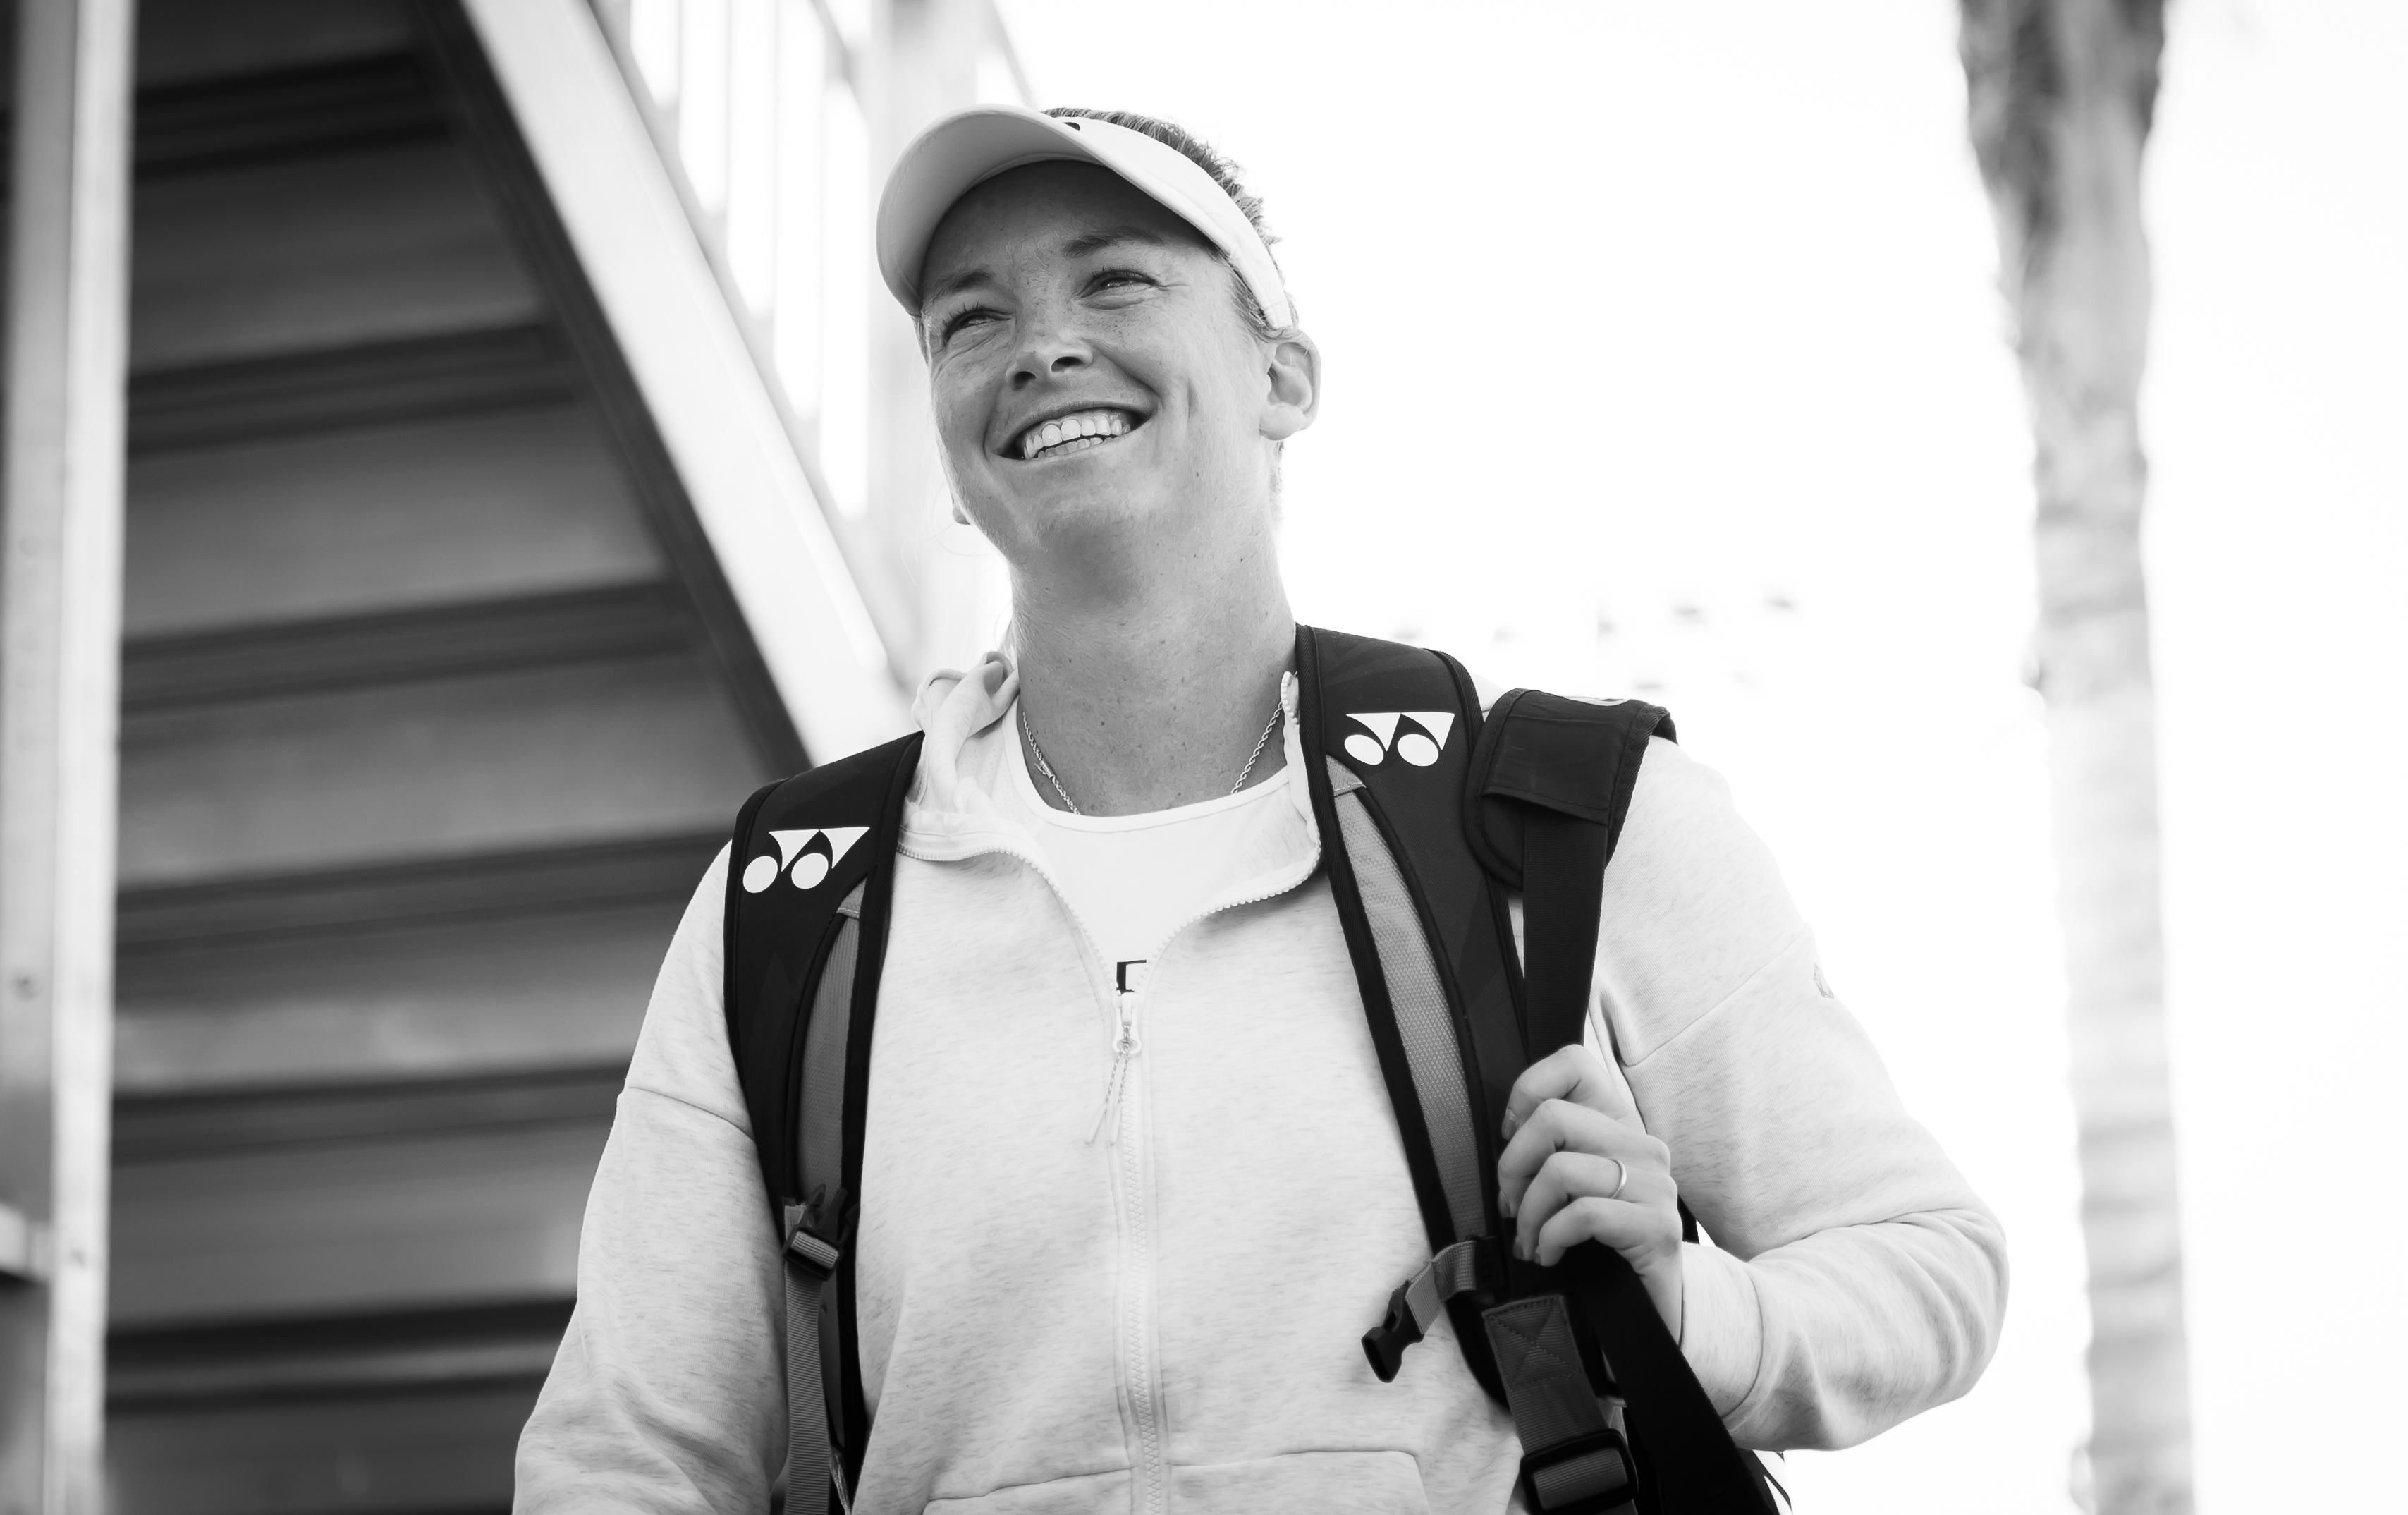 CoCo Vandeweghe Serves Up Her Return: 'It was so sudden that I was absolutely in shock'